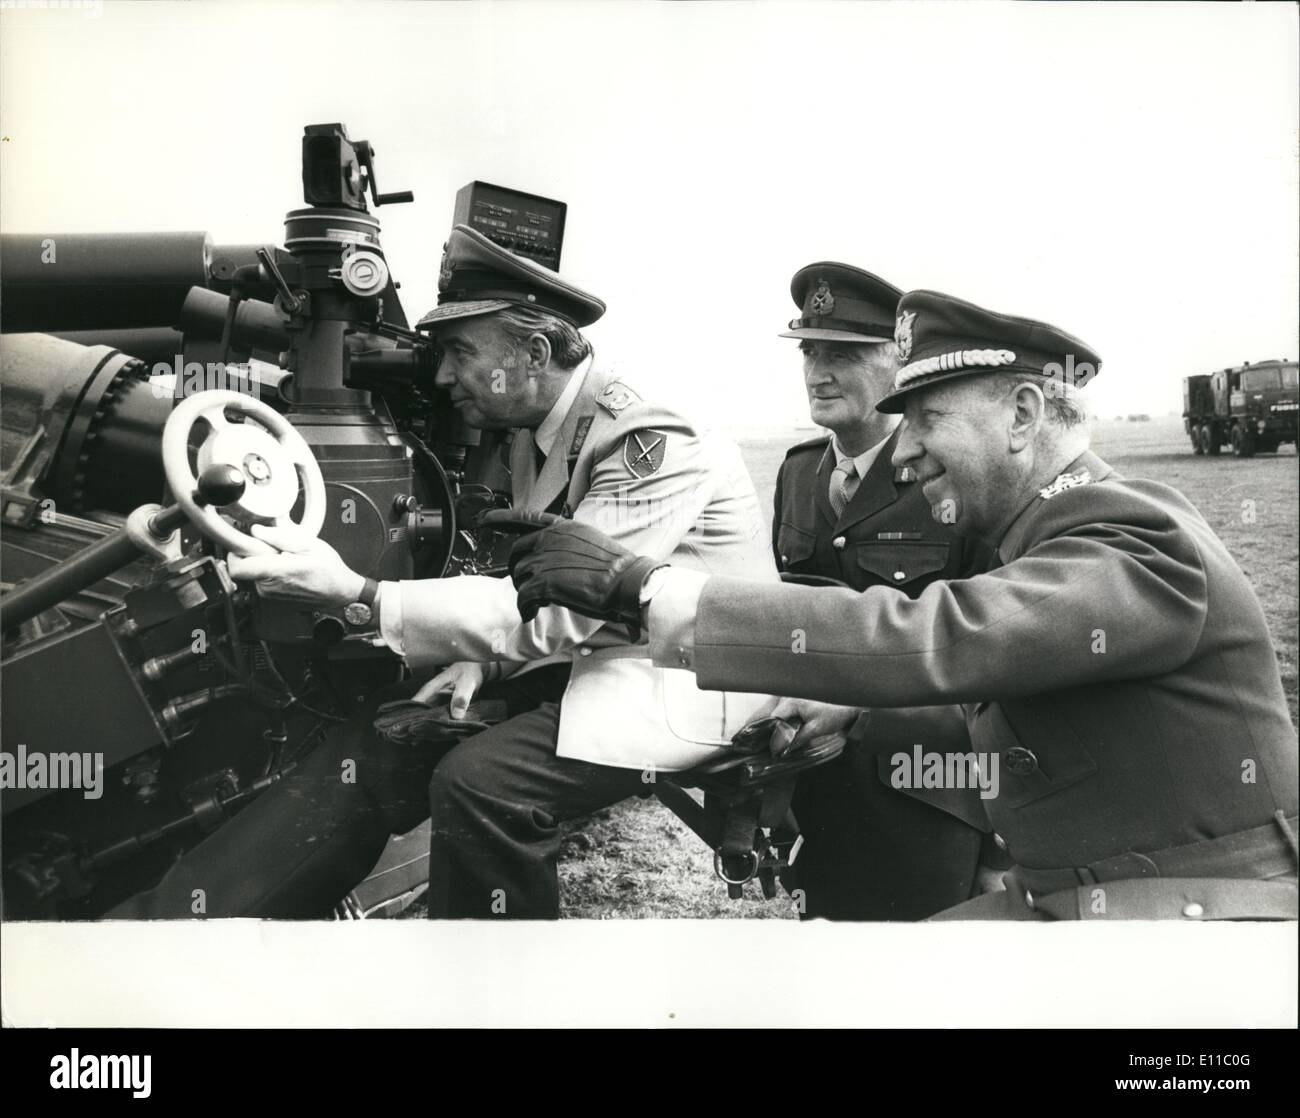 Sep. 09, 1976 - The International Acceptance of the FH70 155 Mm Field Howitzer art the Royal School of Artillery-Larkhill: There was a demonstration today of the FH70 155 mm Field Howitzer at the Royal School of Artillery as Larkhill, Salisbury. The FH70 project started as bi-lateral agreement between the U.K. and Germany in 1966. A Memorandum of Understanding was signed in 1968 and development of commenced that year - Stock Image